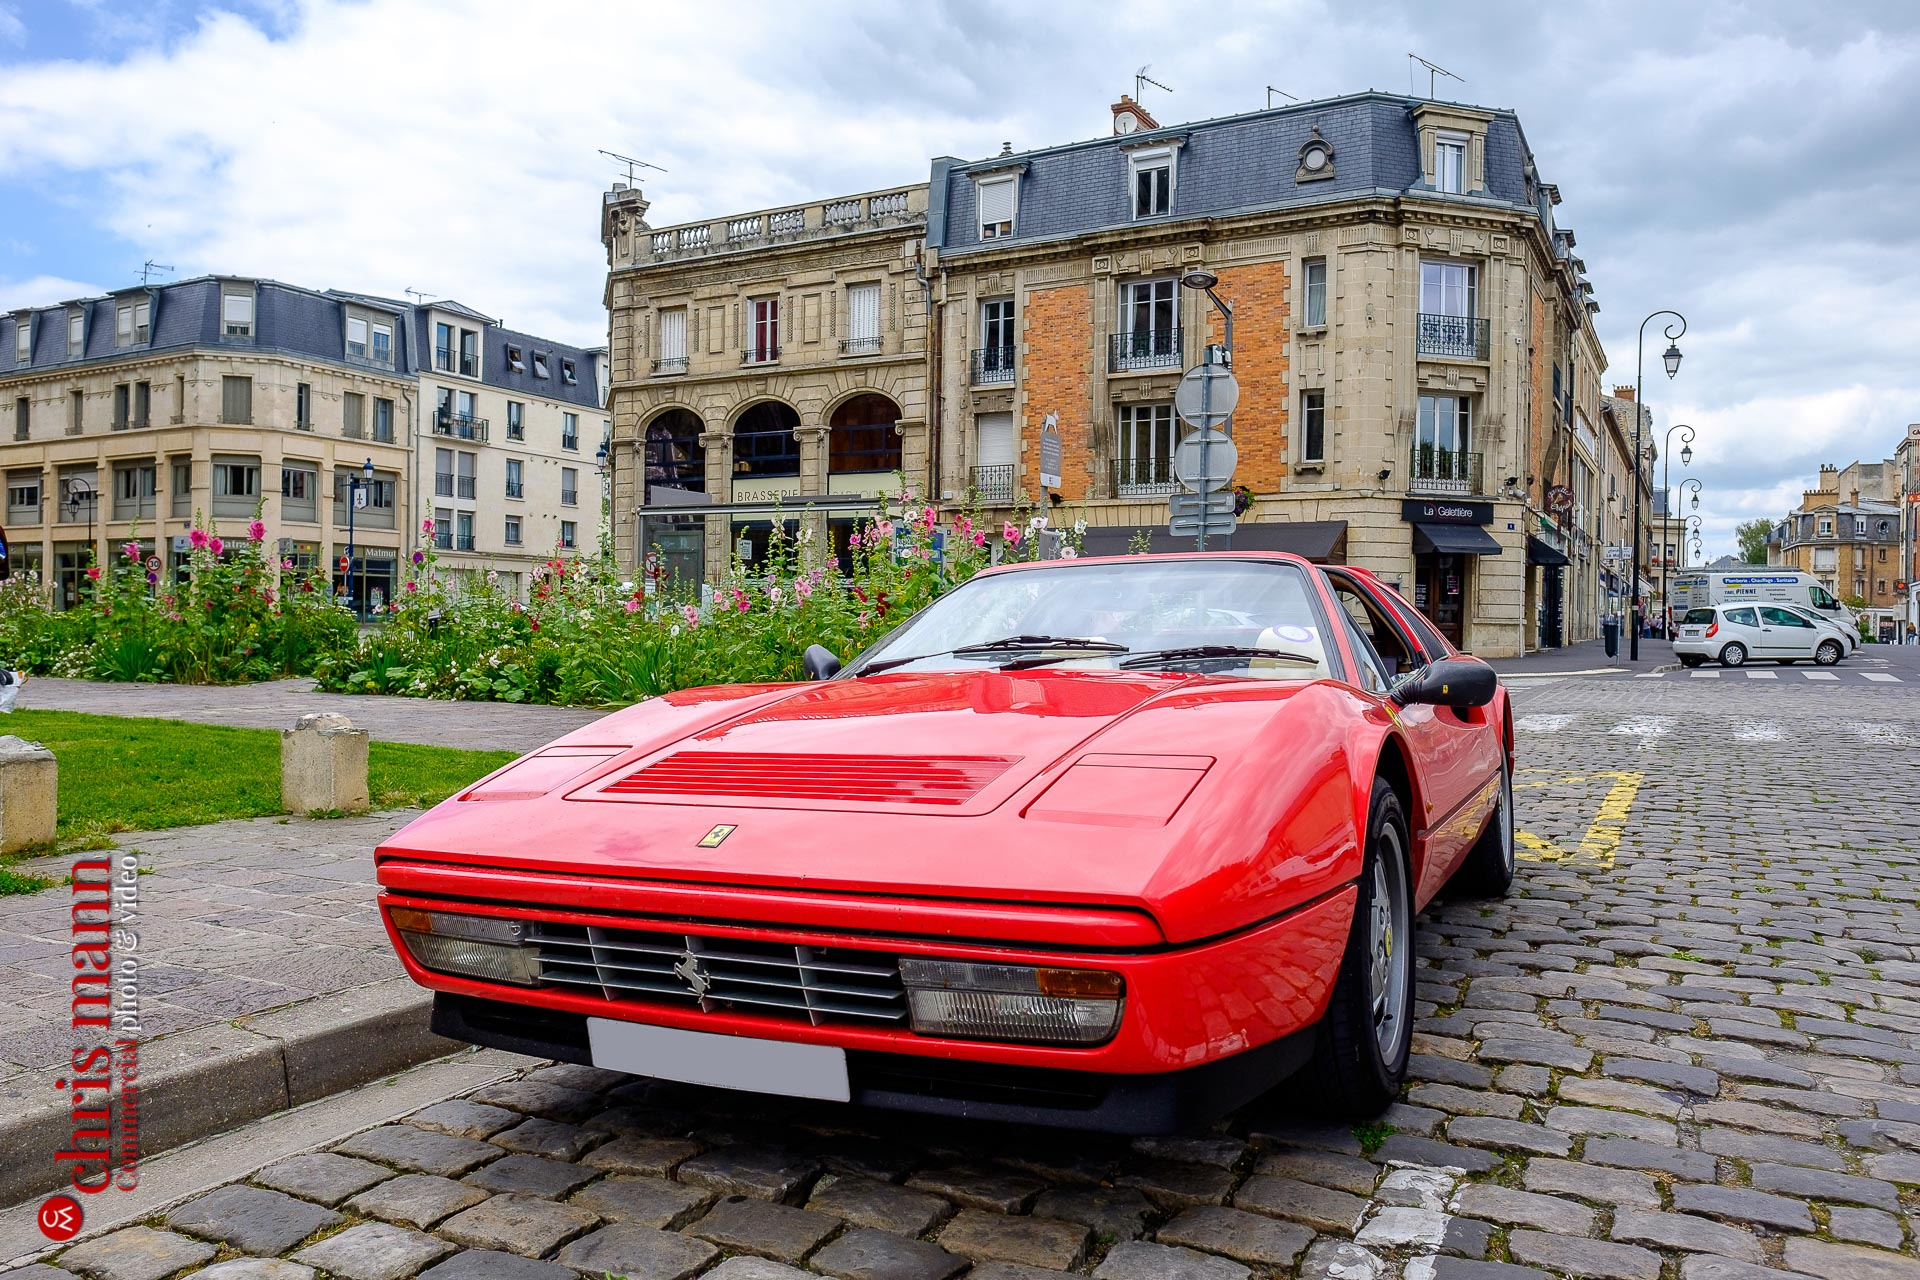 Ferrari 328 GTS Targa in Soissons Picardy France